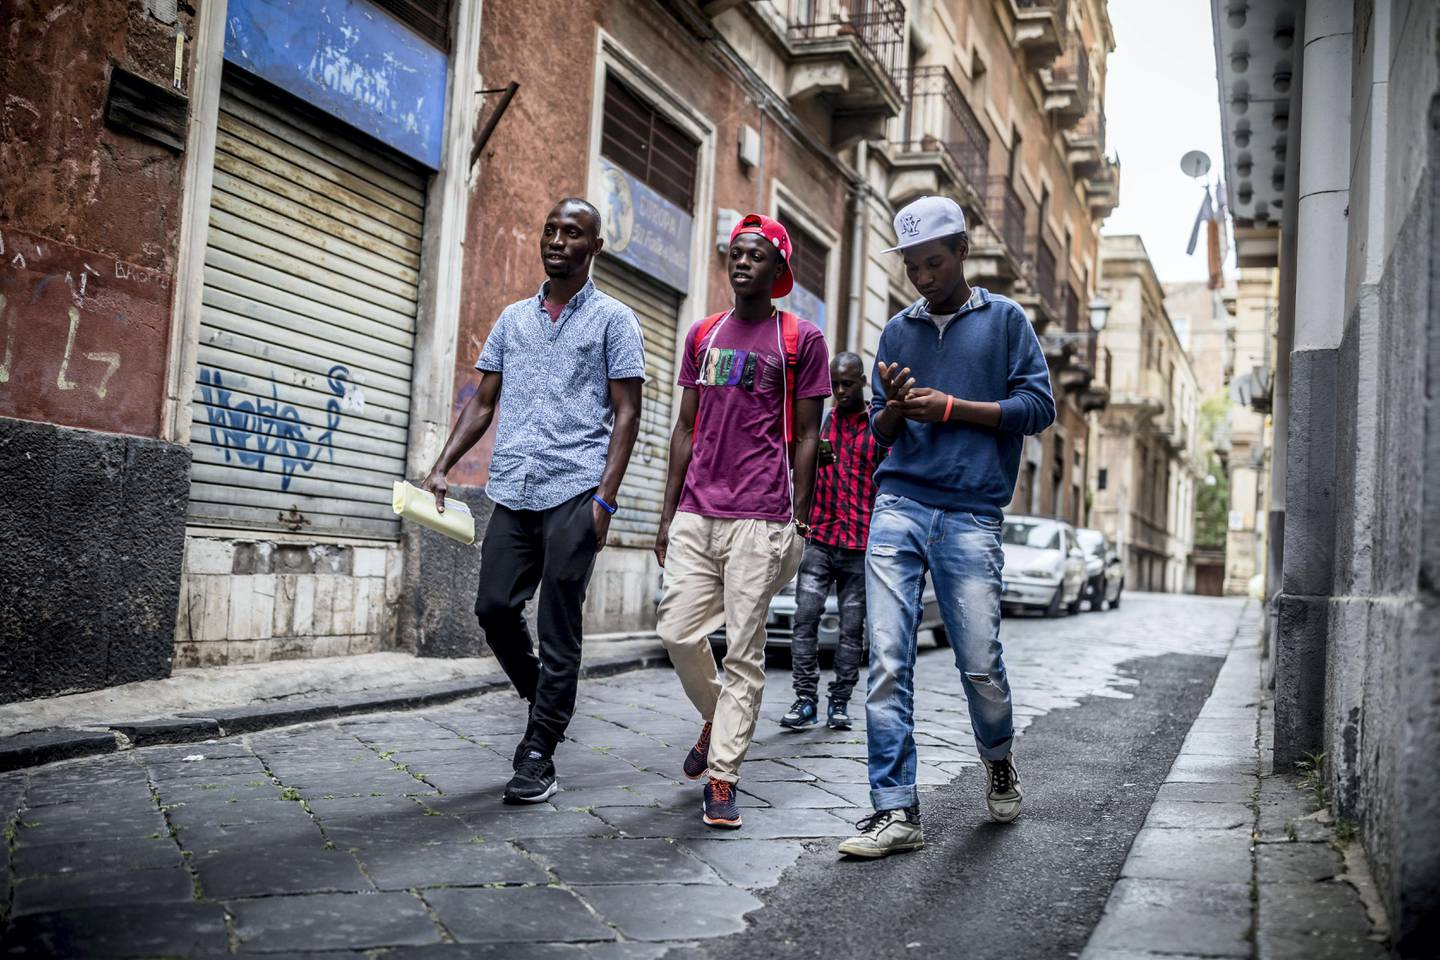 The refugees Mikailou Diallo (L-R), Landing Solly Ameidou Sidy Iraore and Asowe Abdoulie walk after a visit at the community center through Catania in Sicily, Italy, 25 May 2017. Social workers take care of the refugees at the community center. Refugees and other migrants can feel safe and get counselling. The heads of the G7 states meet in Sicily from 26 May until 27 May 2017. Photo by: Michael Kappeler/picture-alliance/dpa/AP Images